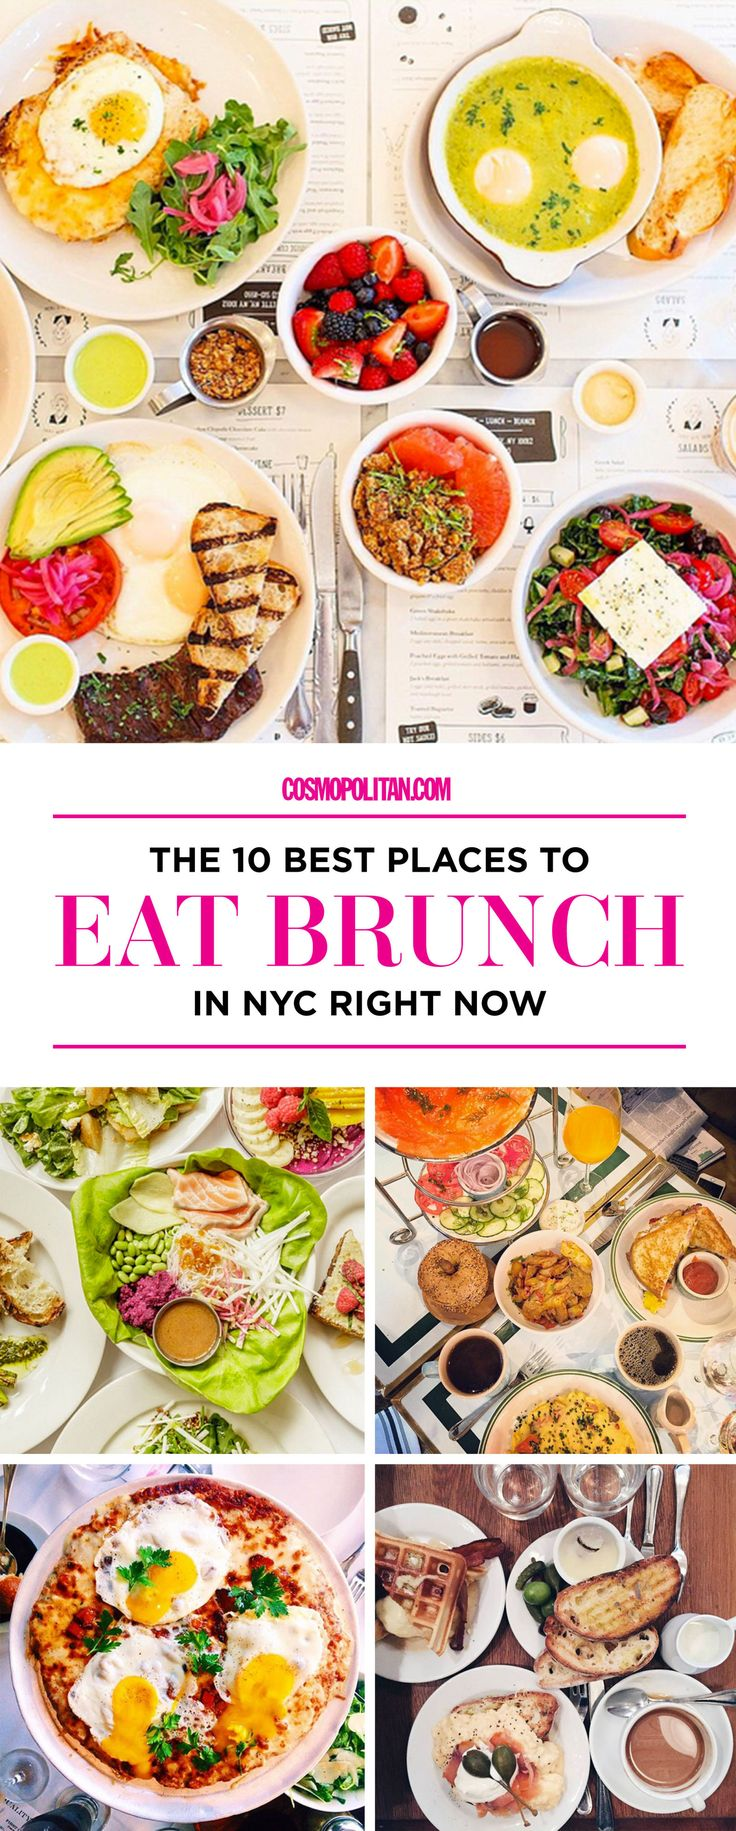 There's no better city for brunch than New York, where there are endless, unparalleled options. Among them, here are 10 restaurants that stand out.